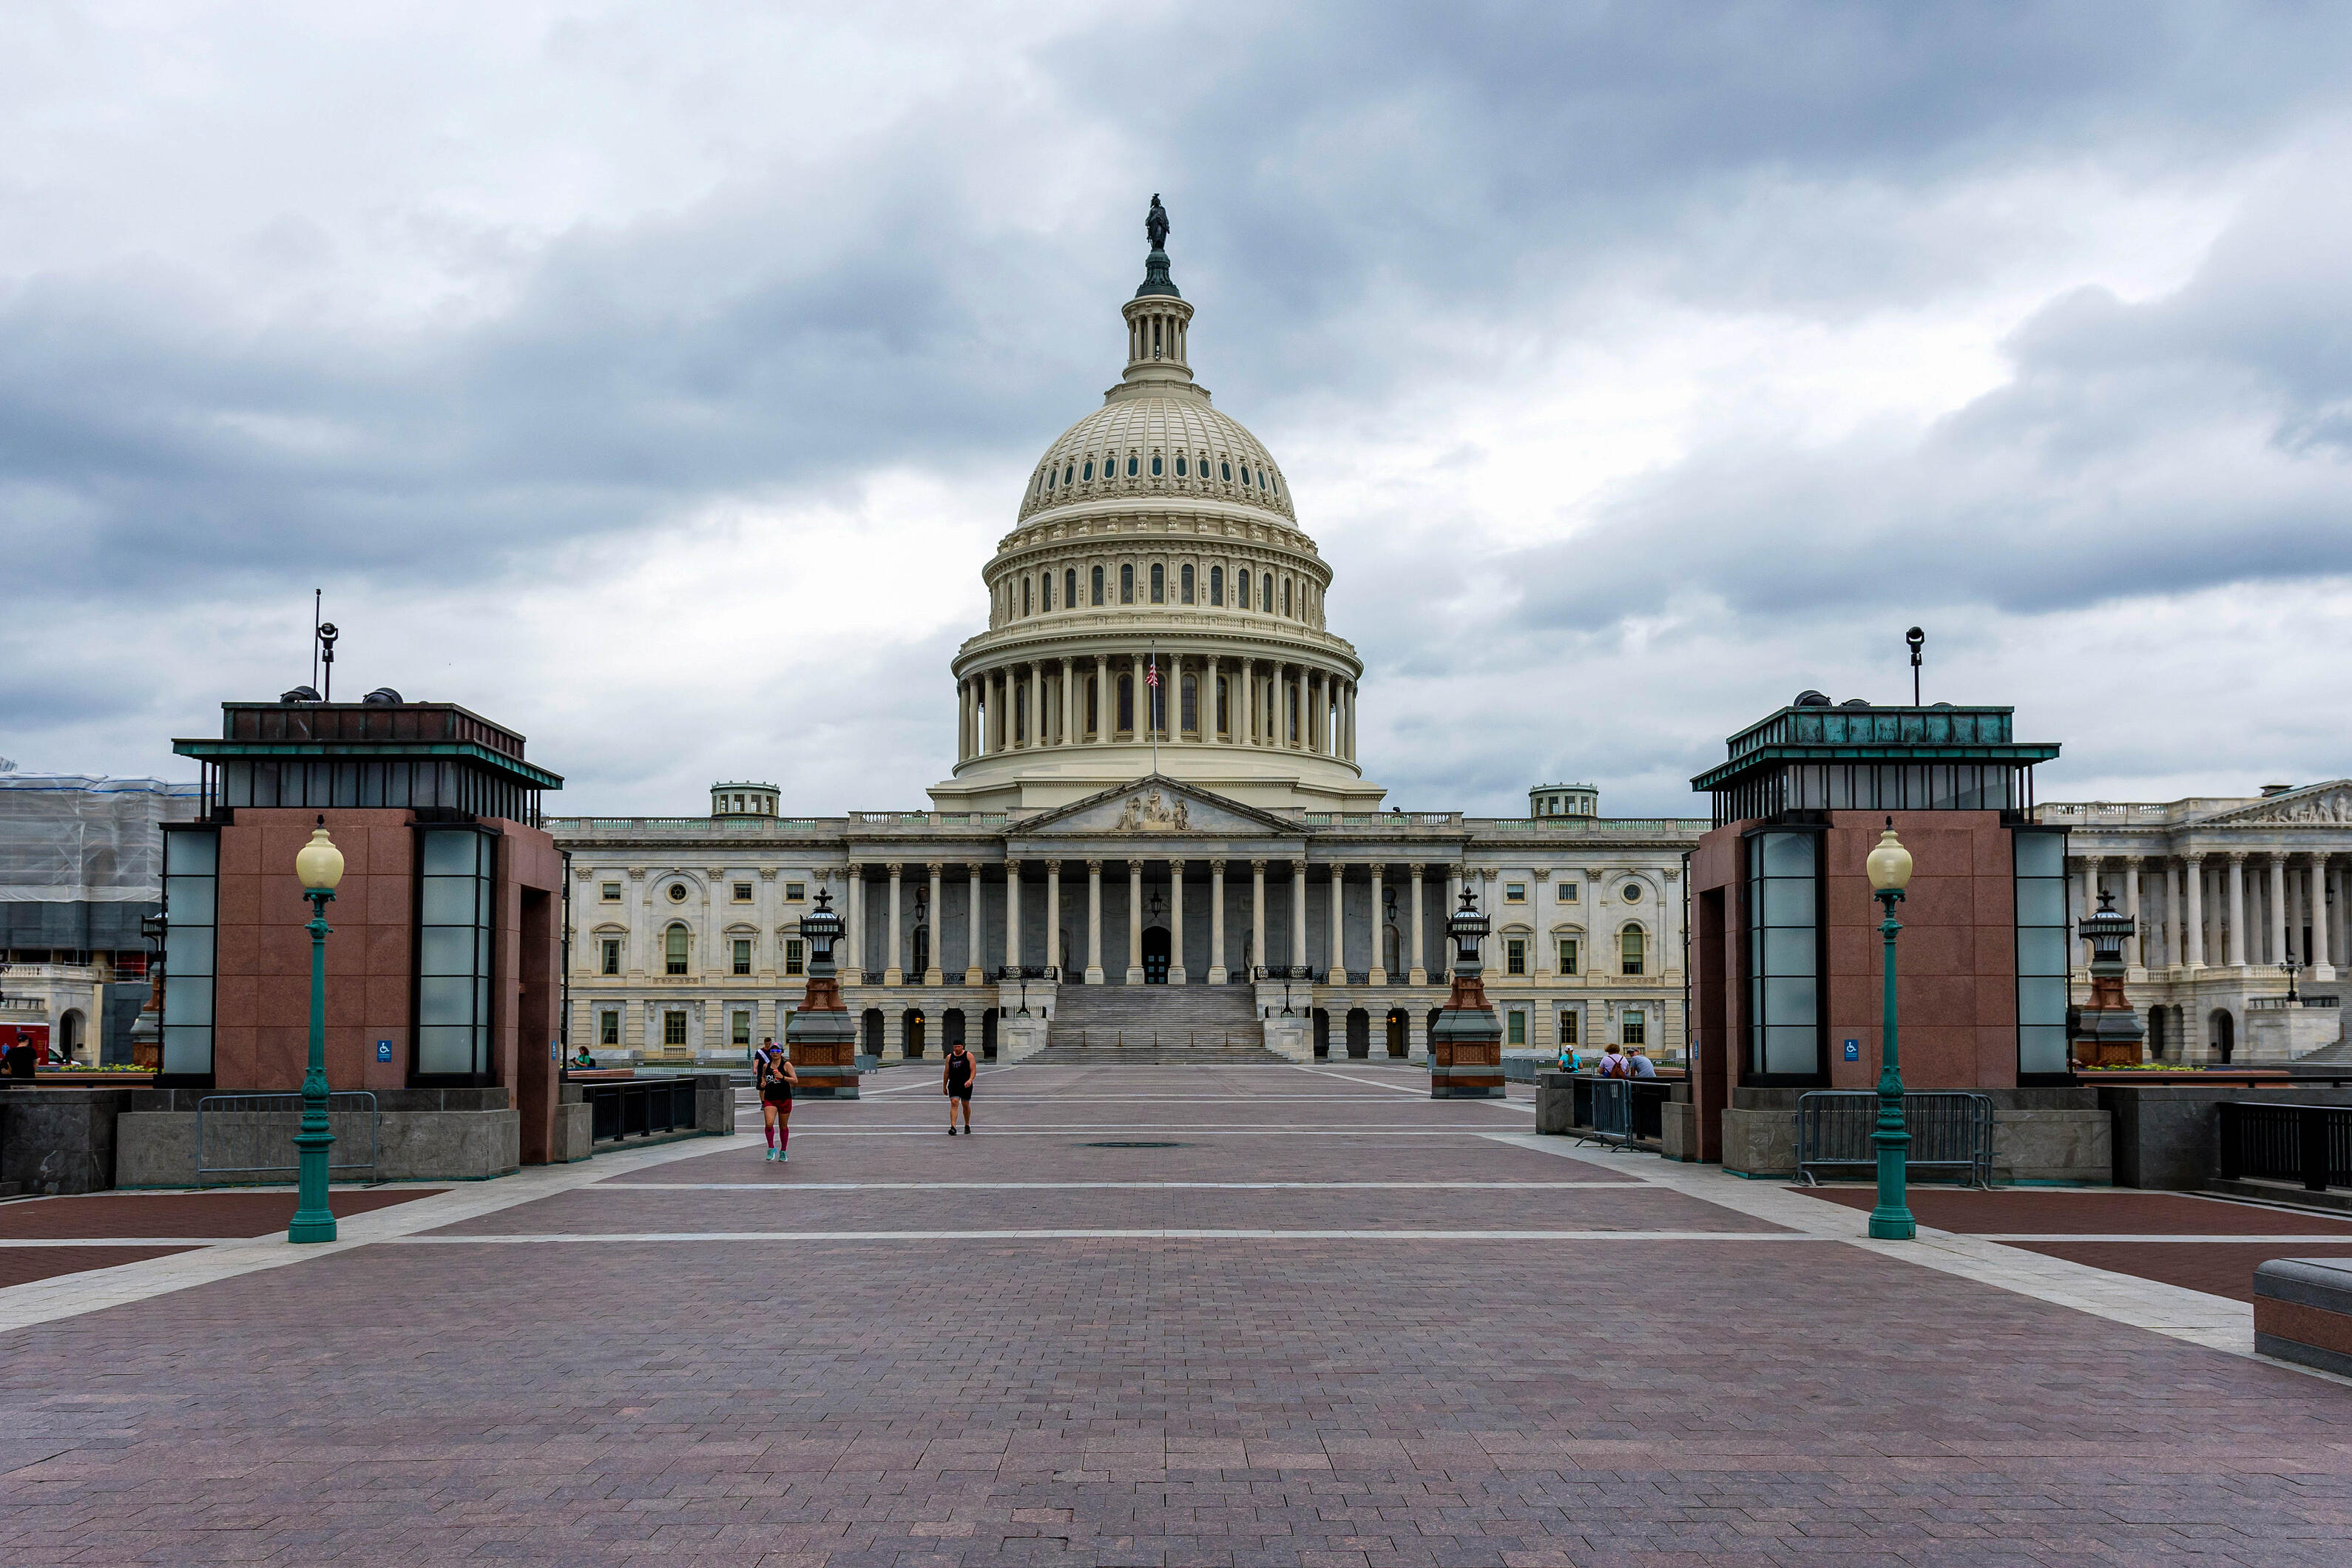 facade-of-the-us-capitol-building-in-washington-dc-on-a-rainy-day-view-from-stone-plaza-america_t20_Wxy2yK